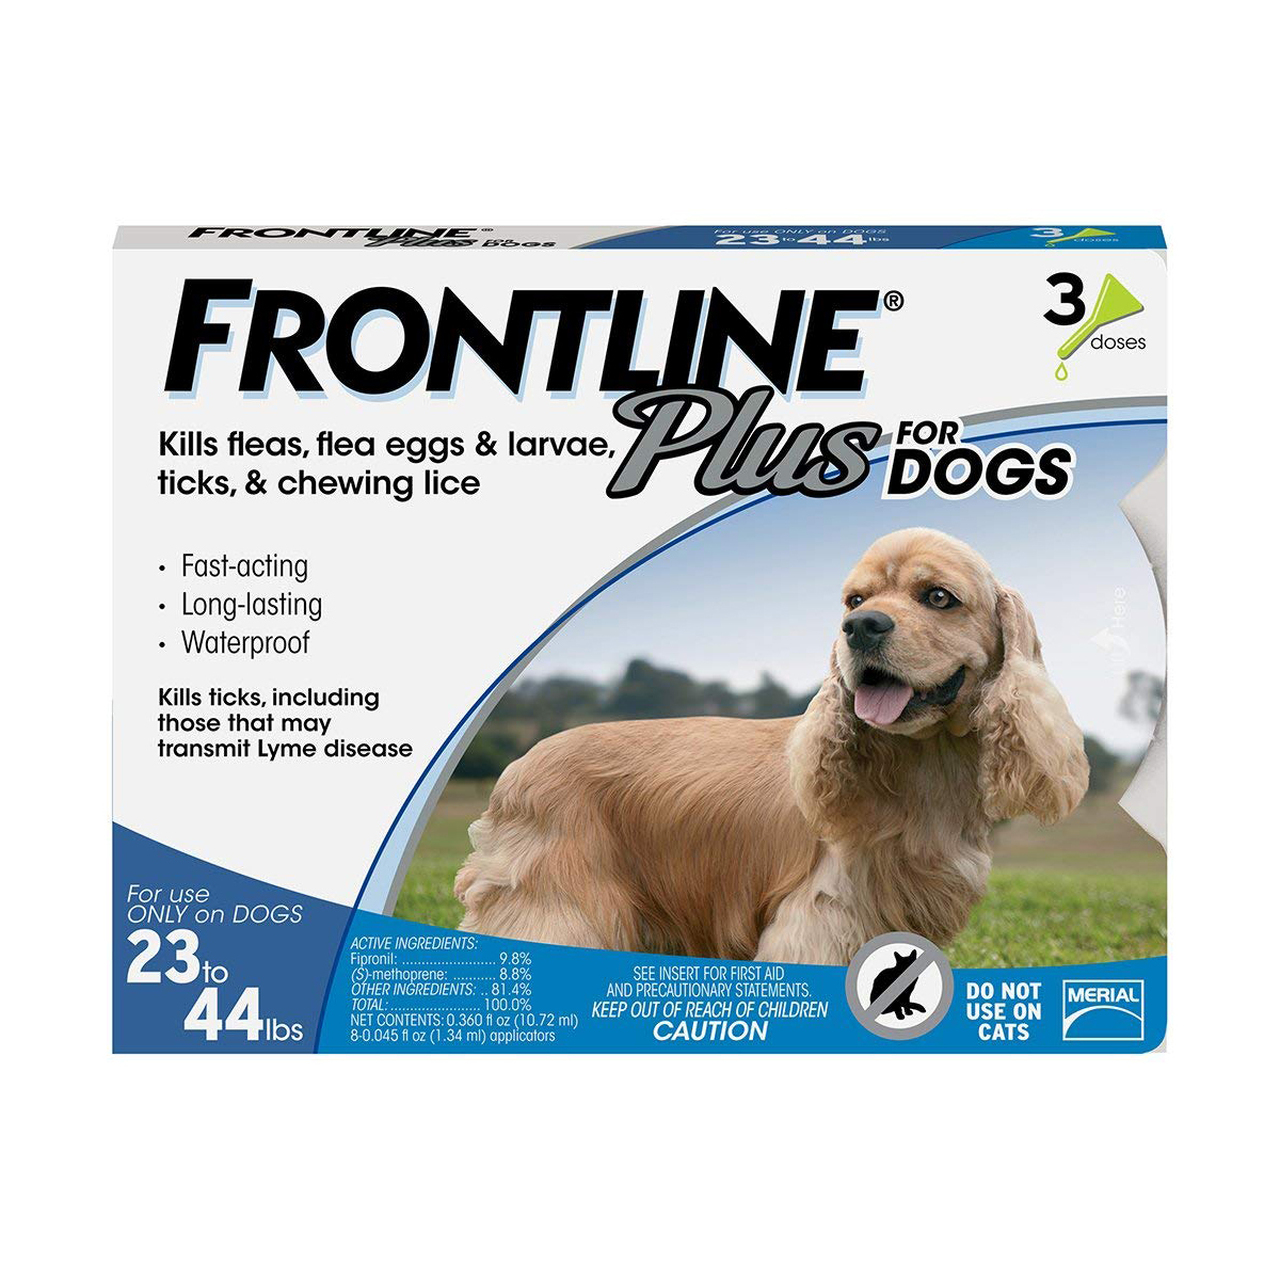 FRONTLINE Plus Flea & Tick Treatment for Medium Dogs (23-44 pounds) Image